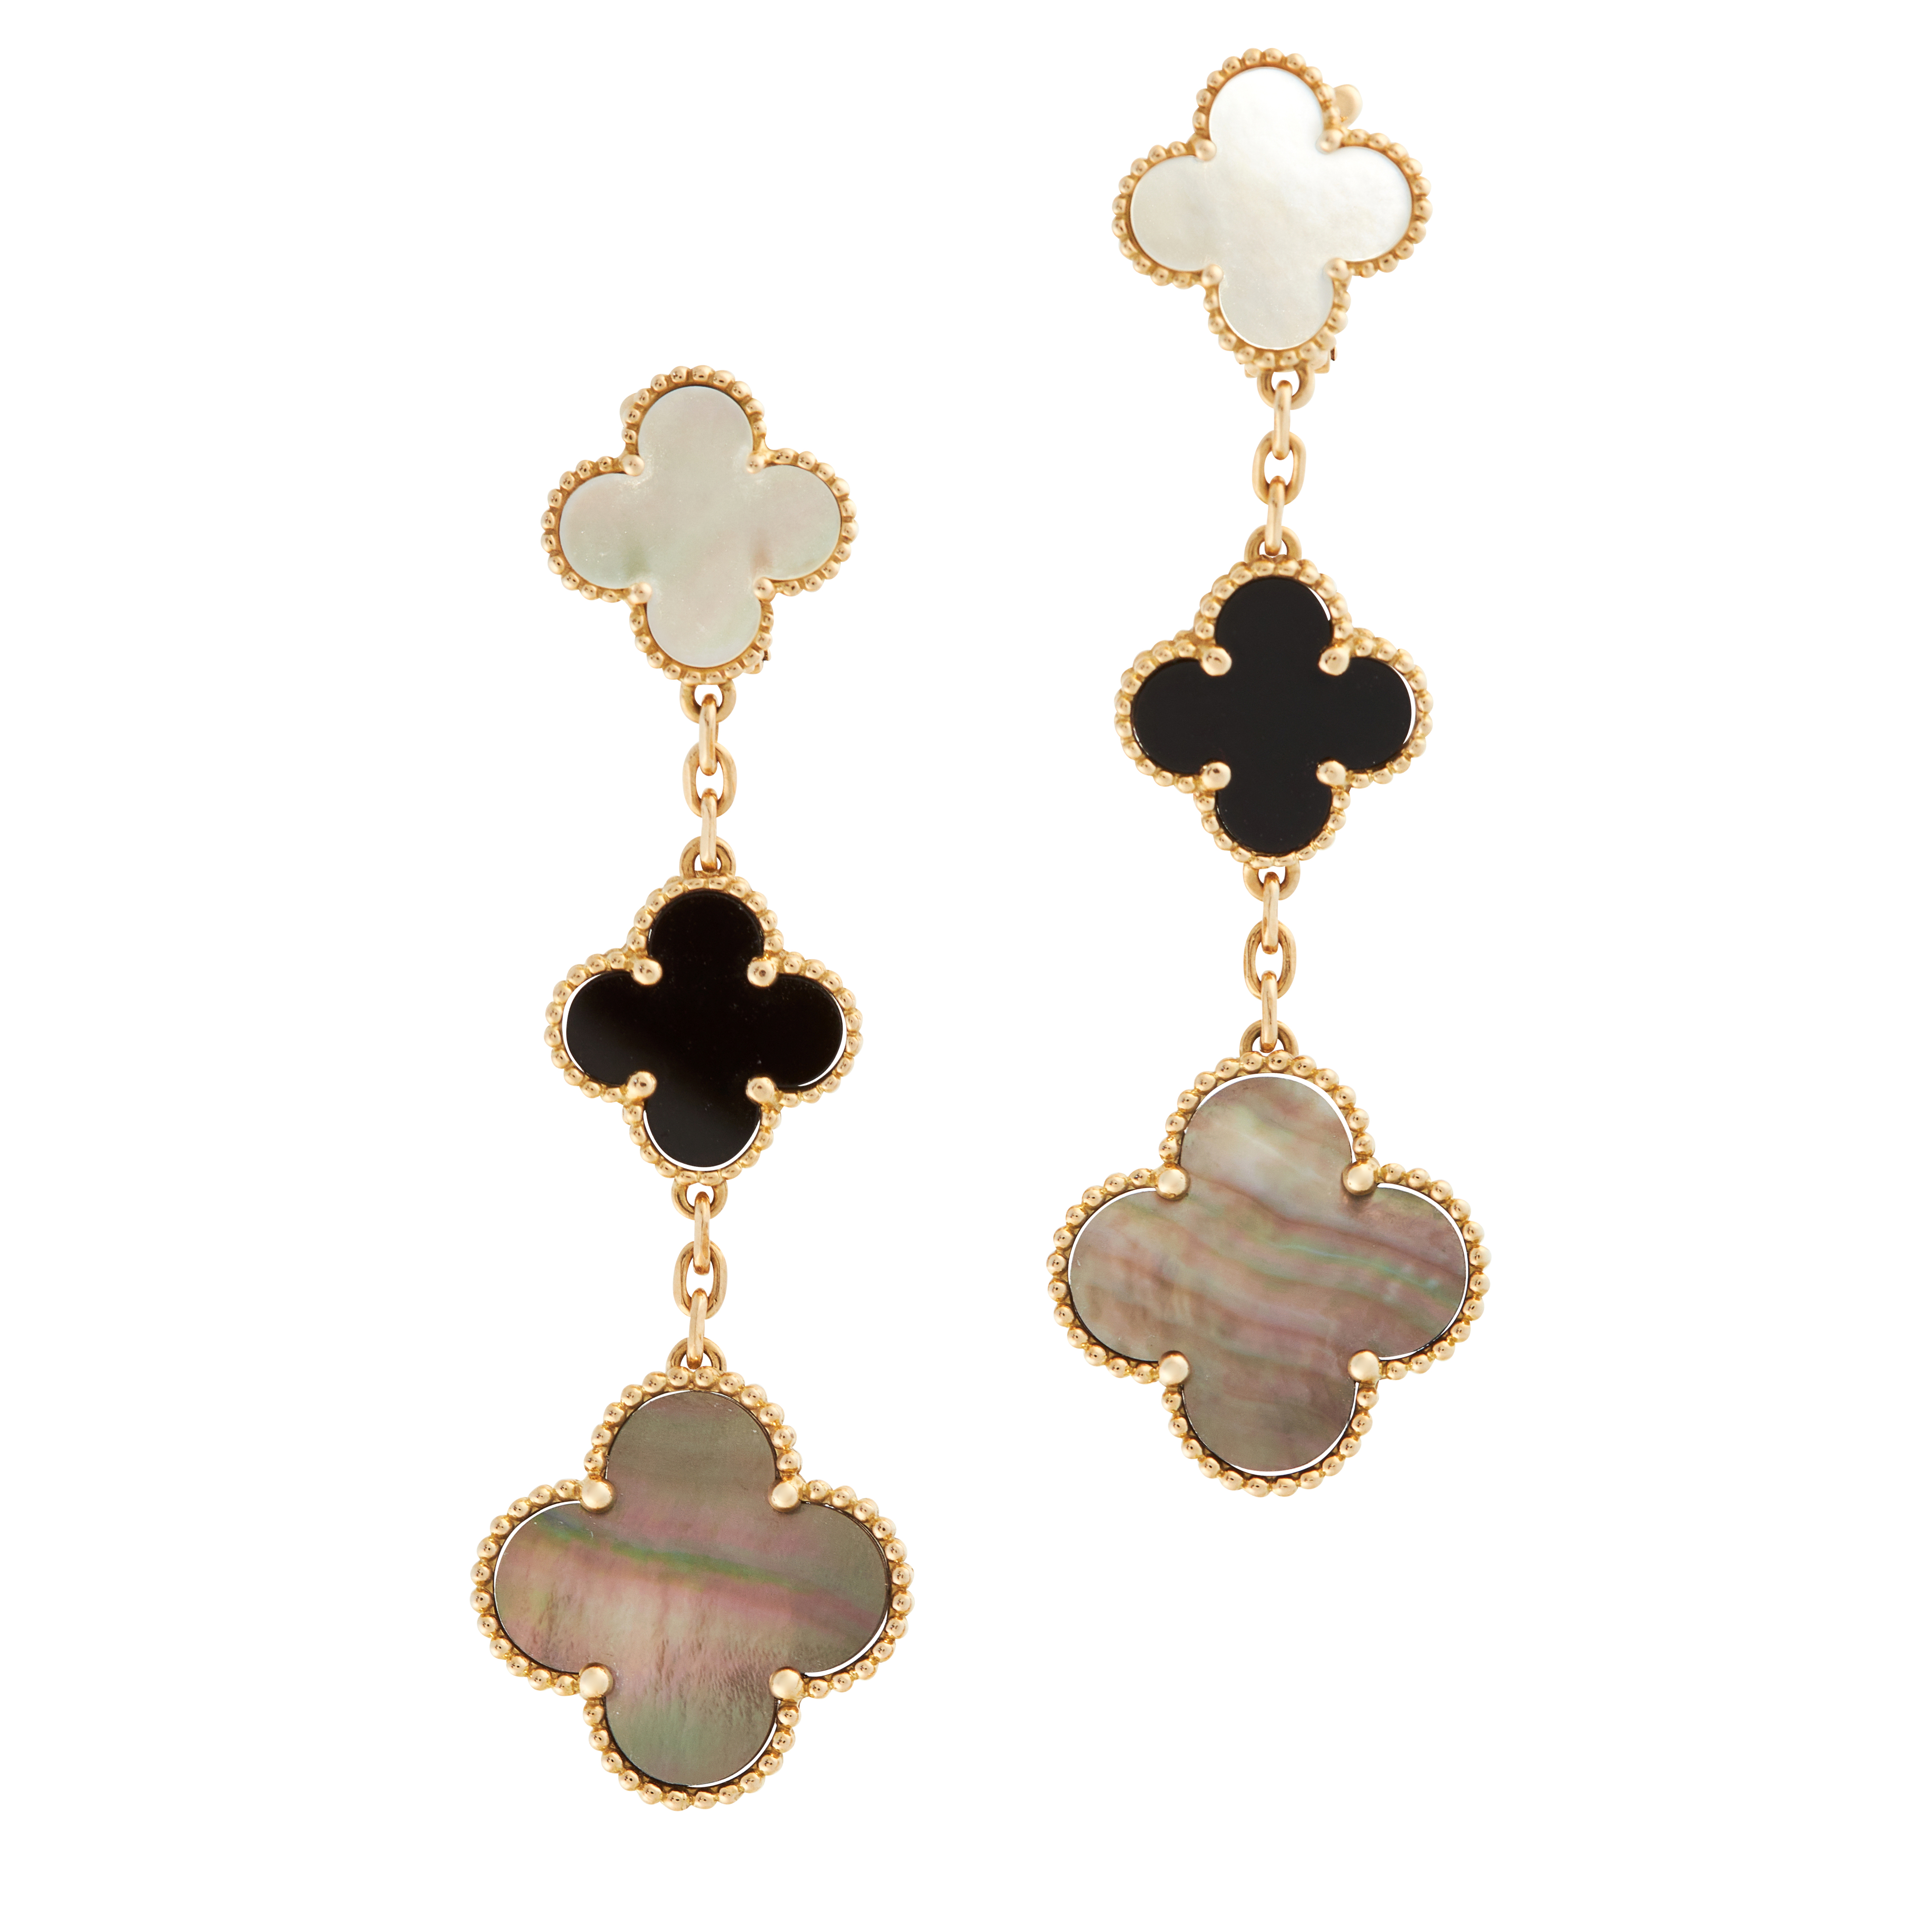 A PAIR OF MOTHER OF PEARL AND ONYX ALHAMBRA EARRINGS, VAN CLEEF & ARPELS in 18ct yellow gold, each